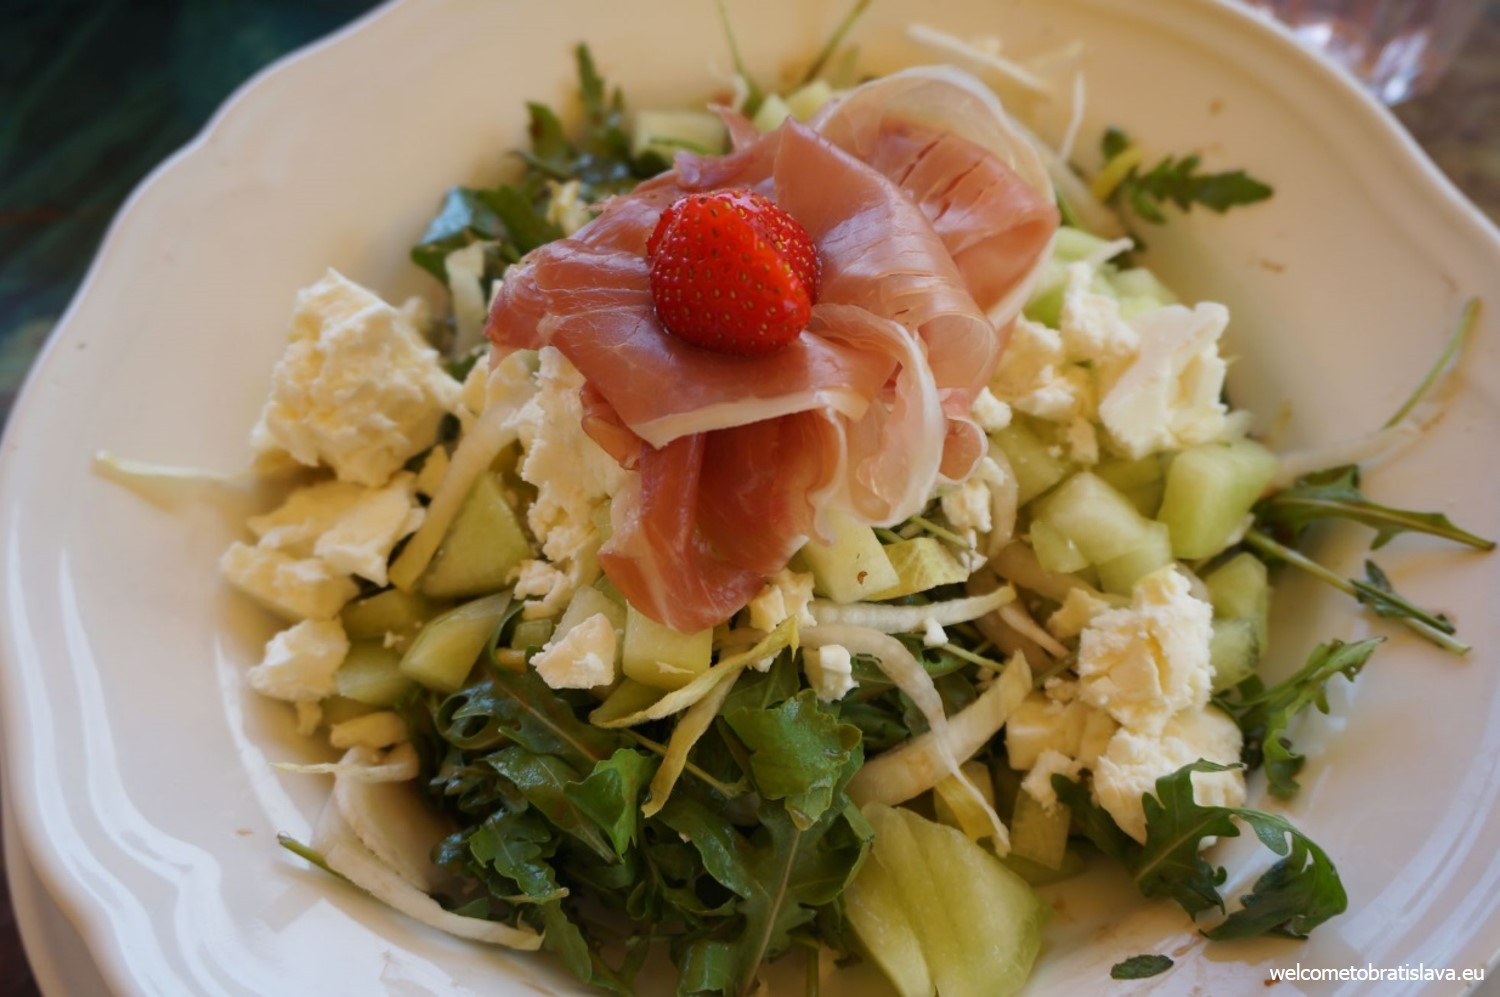 Salad with prosciutto, cheese and yellow melon